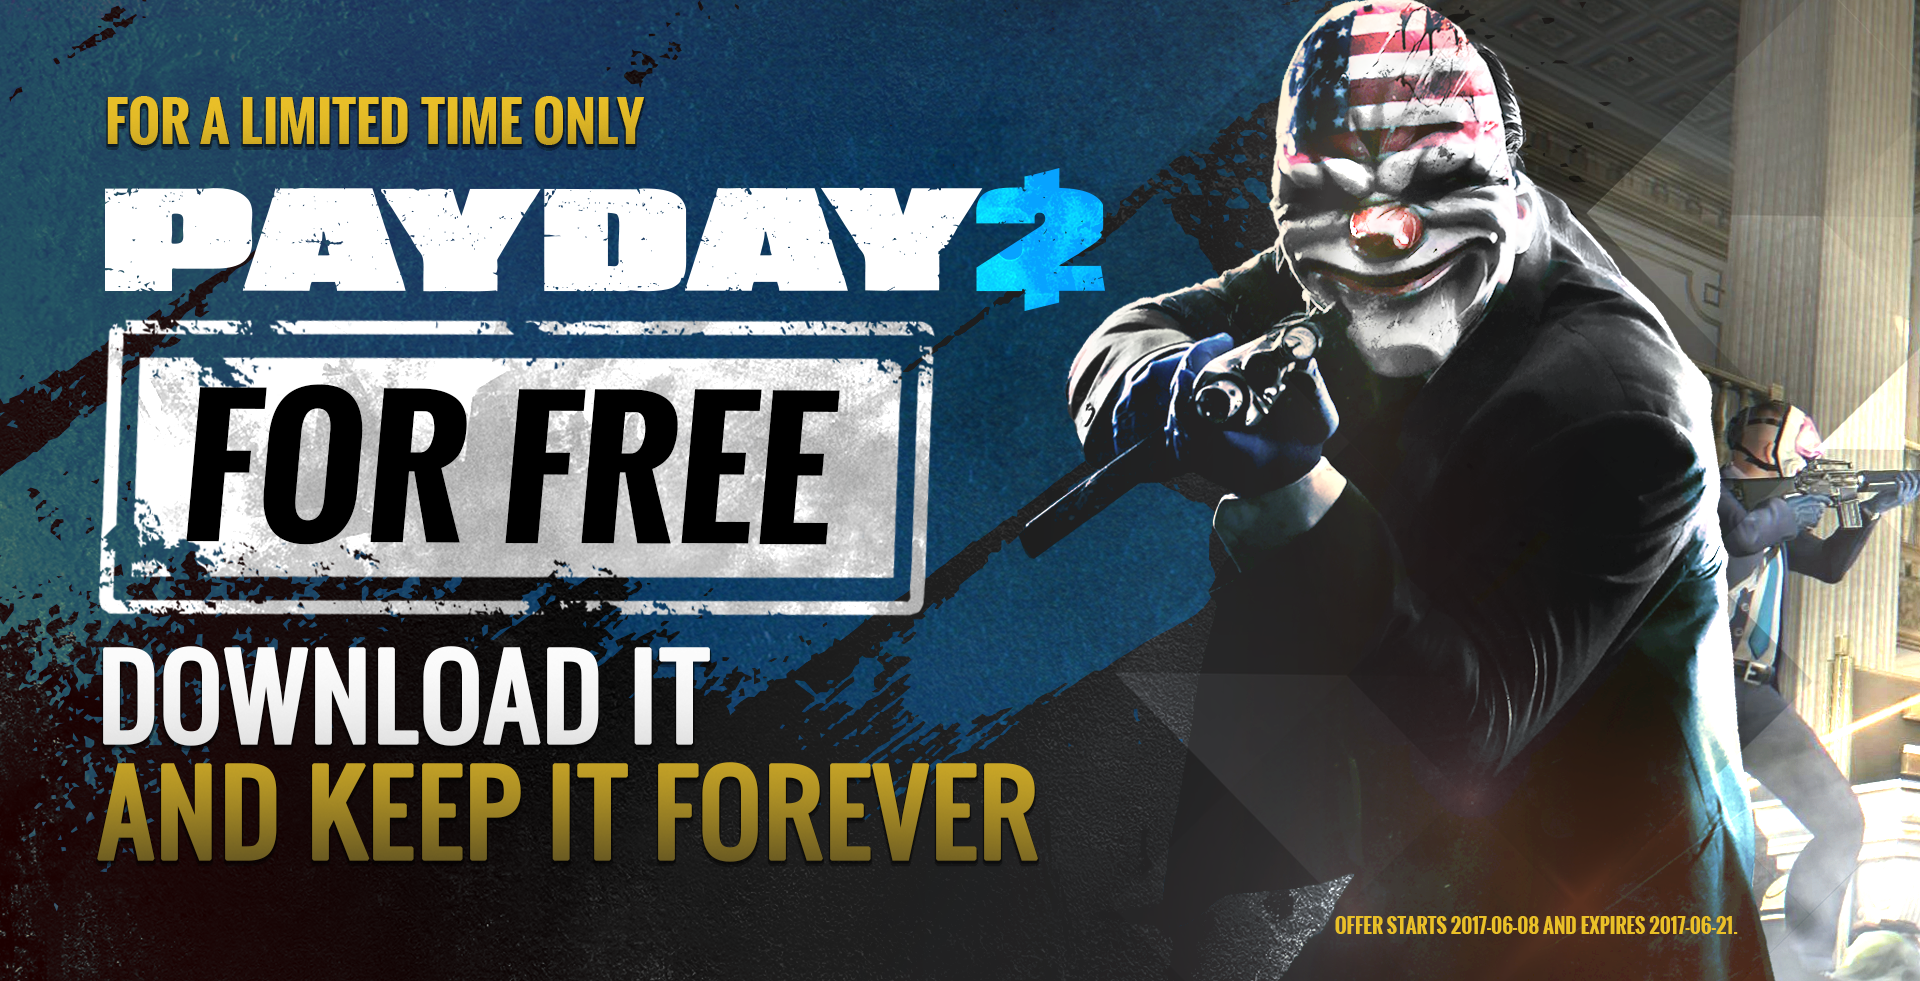 Payday 2 is free on Steam, grab it while you can!